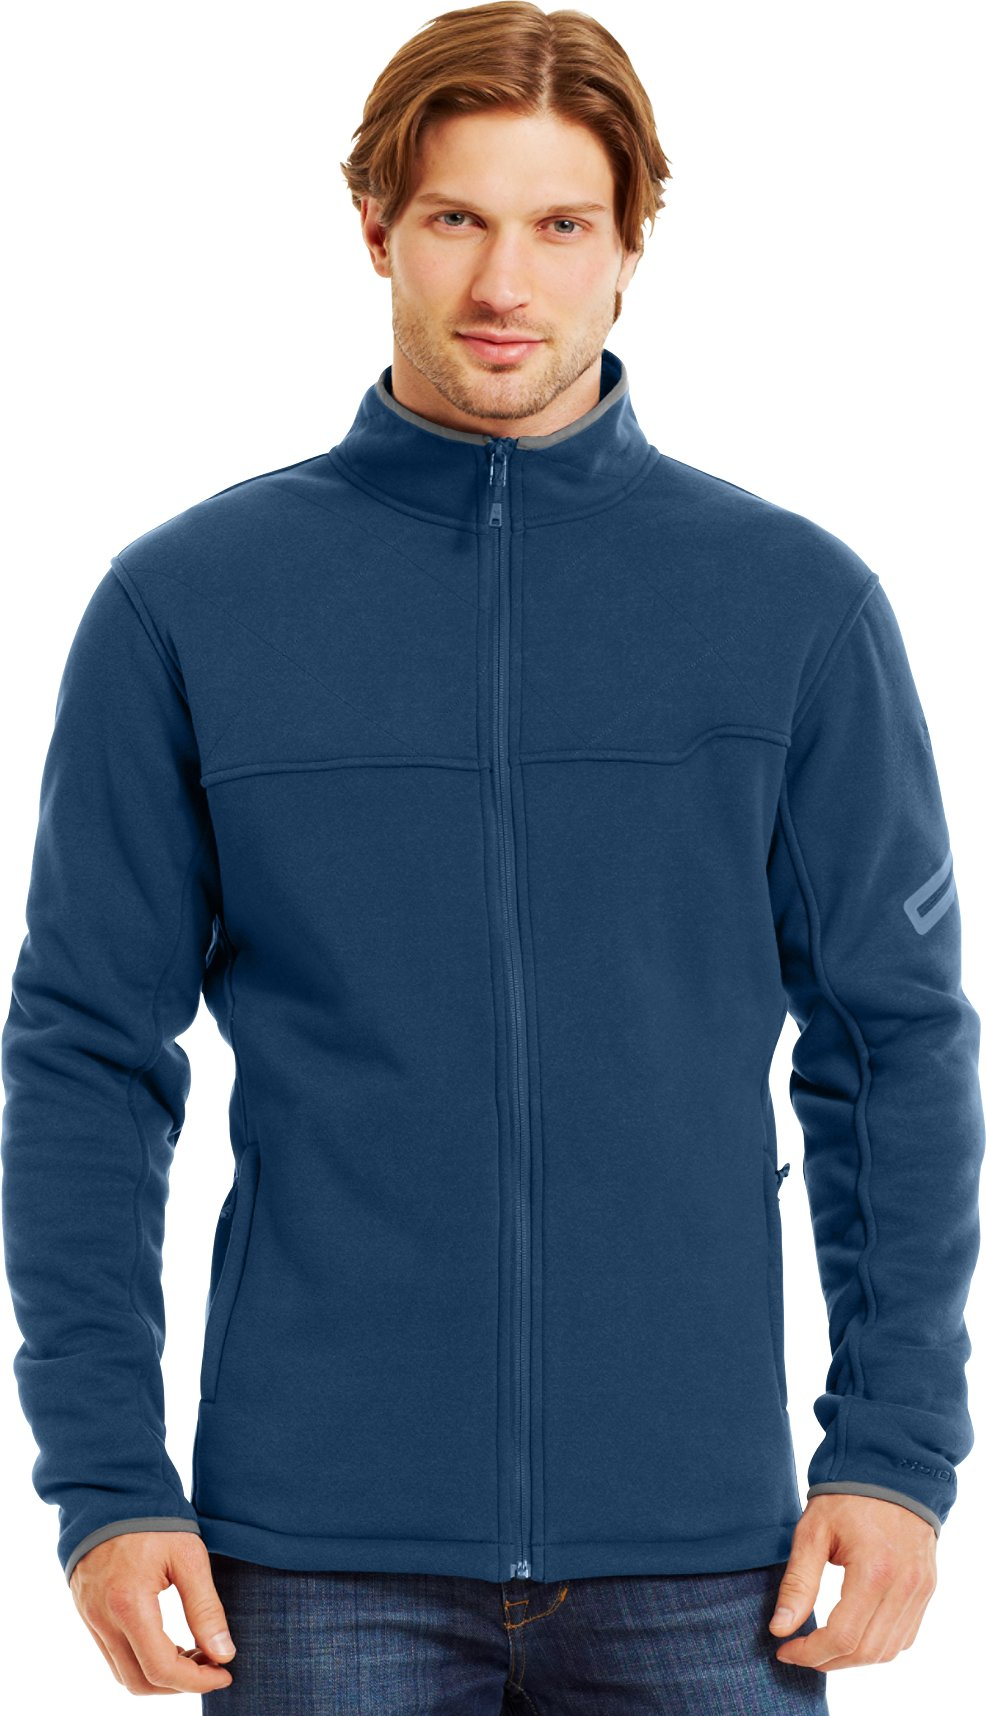 Men's Extreme ColdGear® Jacket, PETROL BLUE